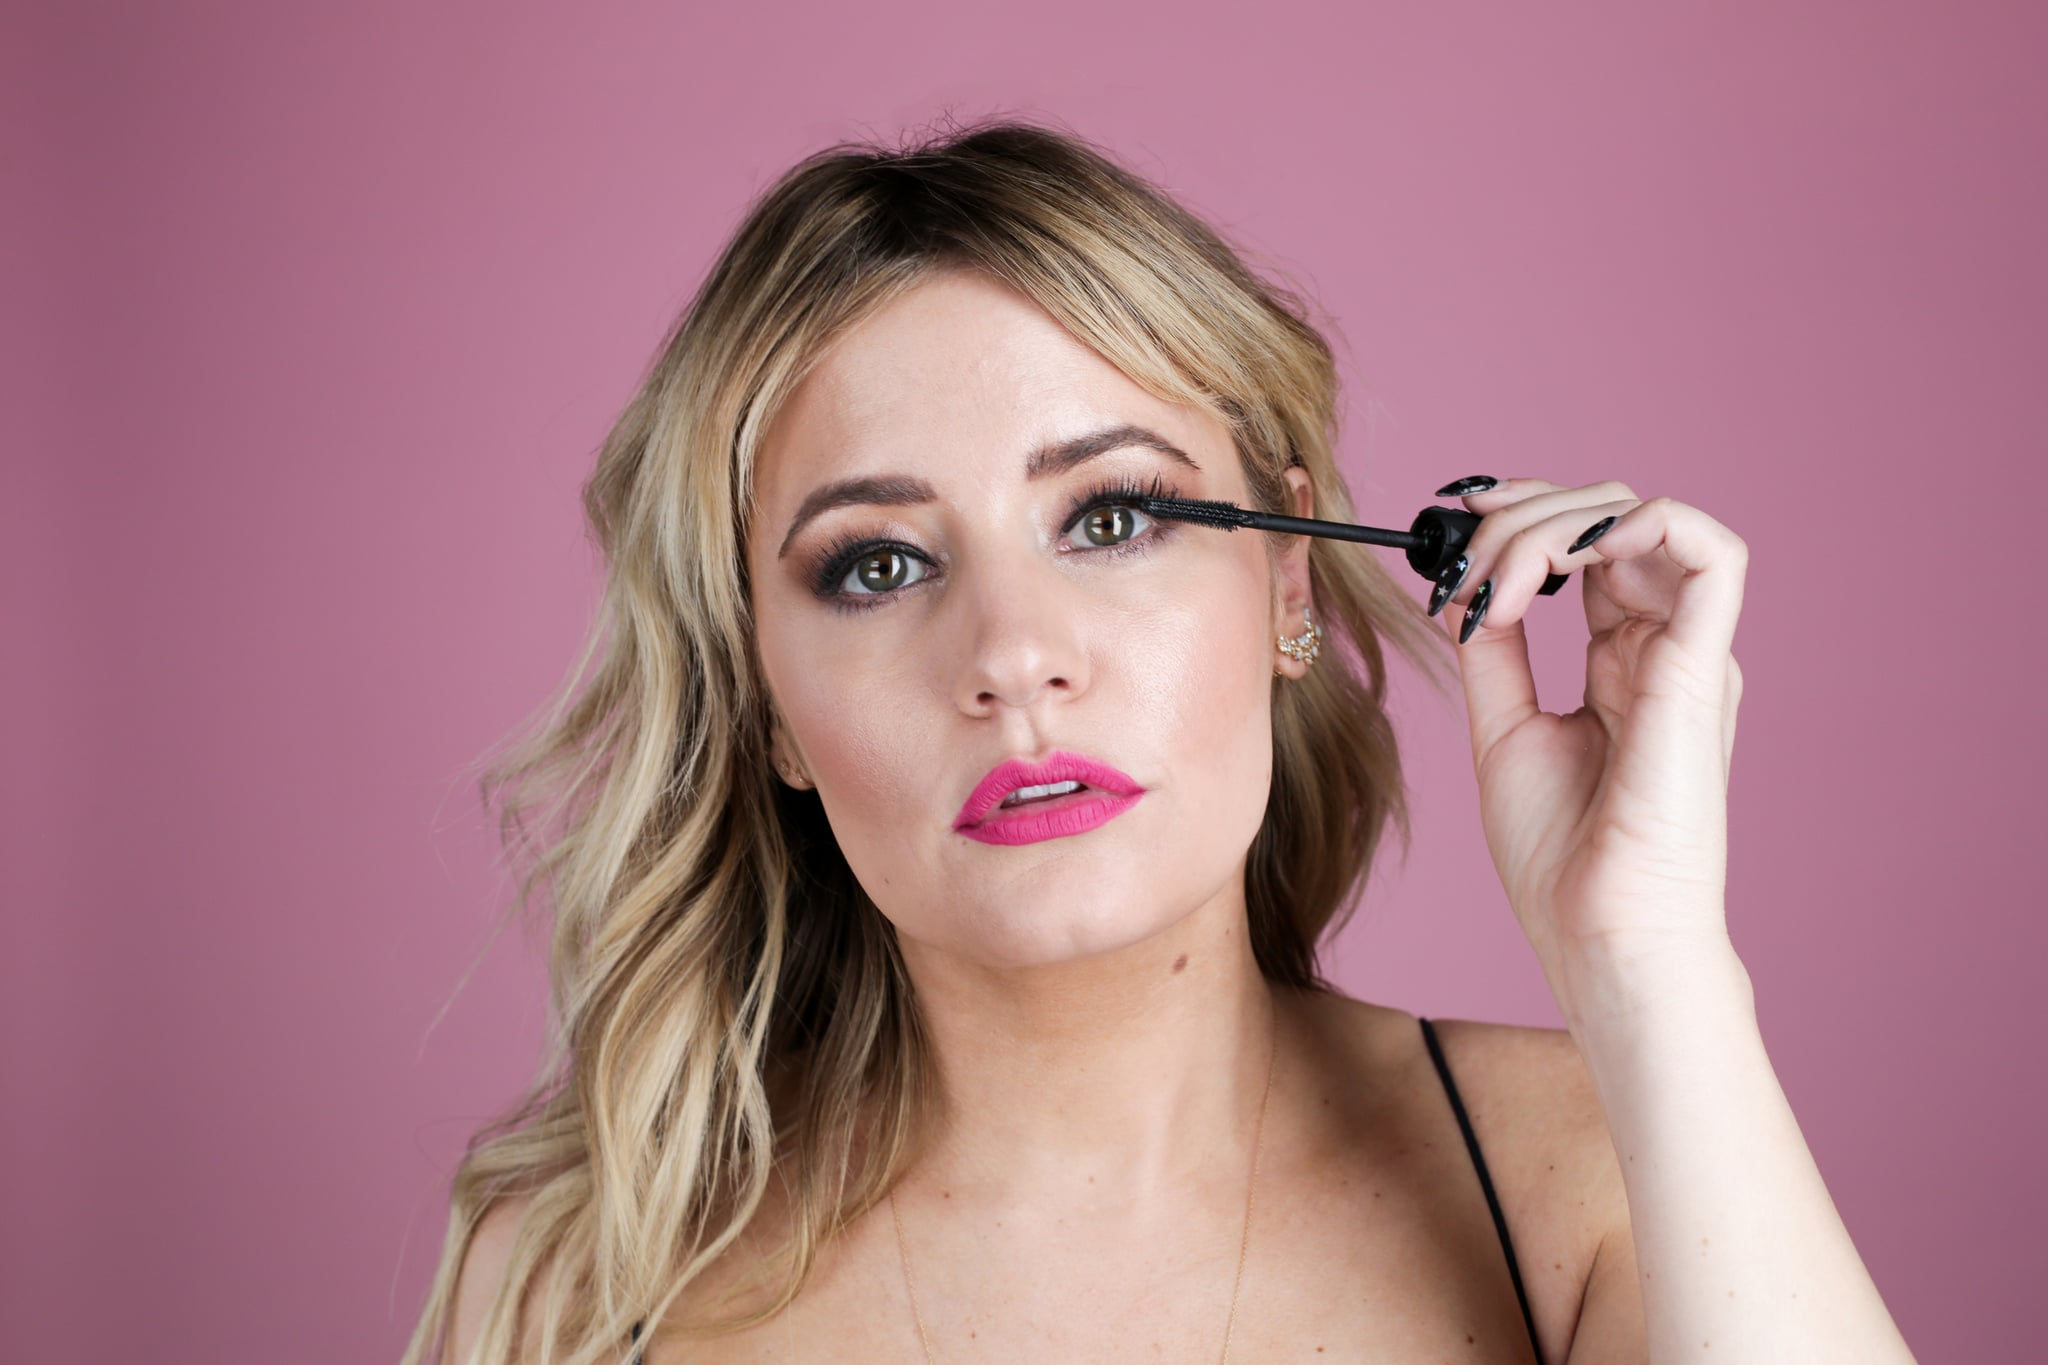 Benefit's new product has finally arrived and we are obsessed